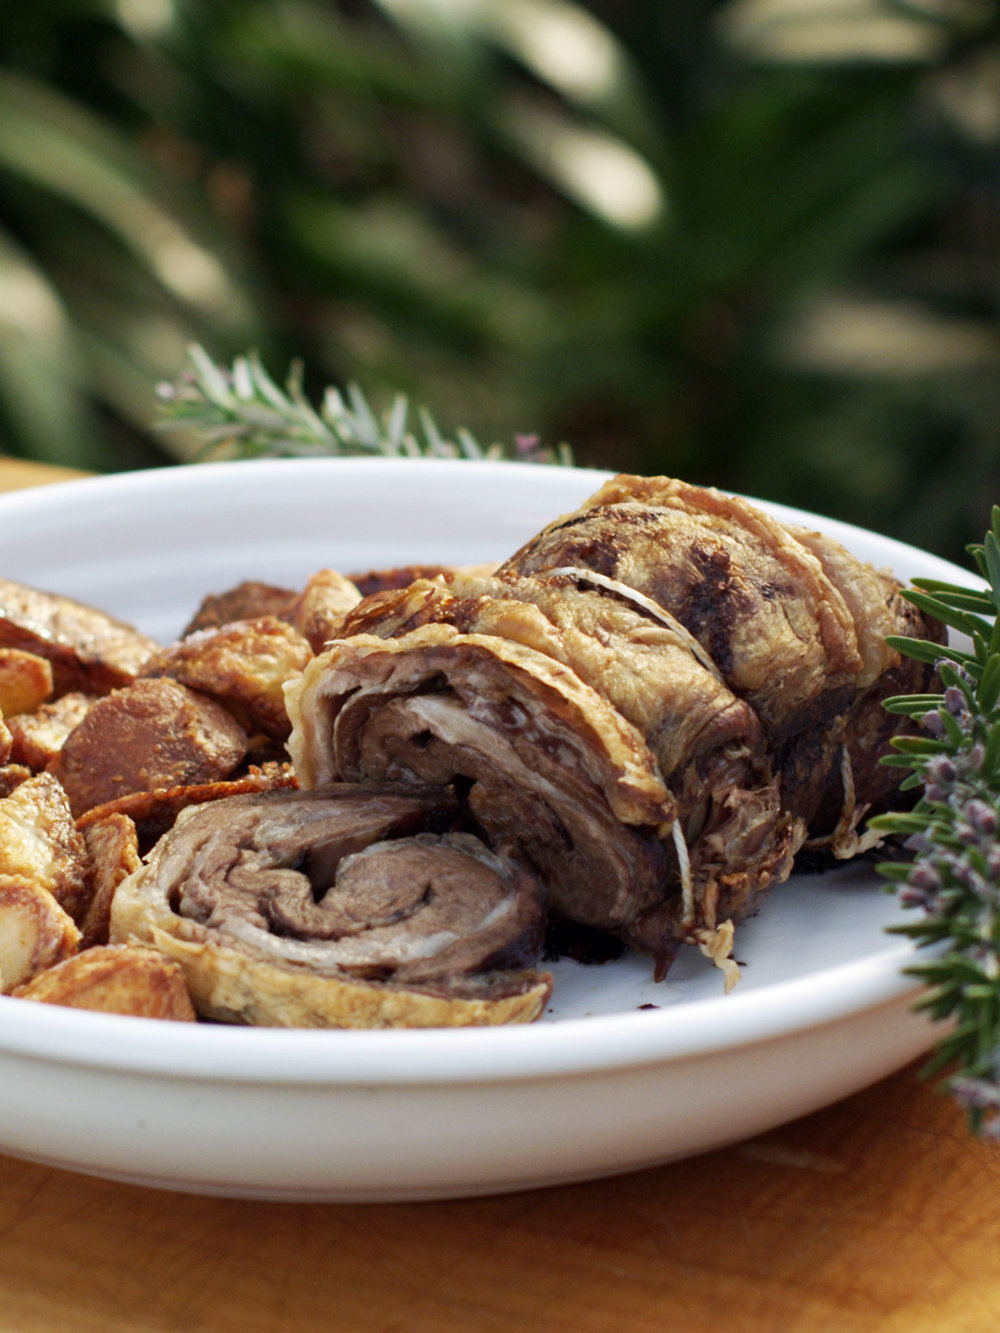 2-080-Lamb-Rolled-Belly-Roast-with-Fried-Potatoes-web.jpg